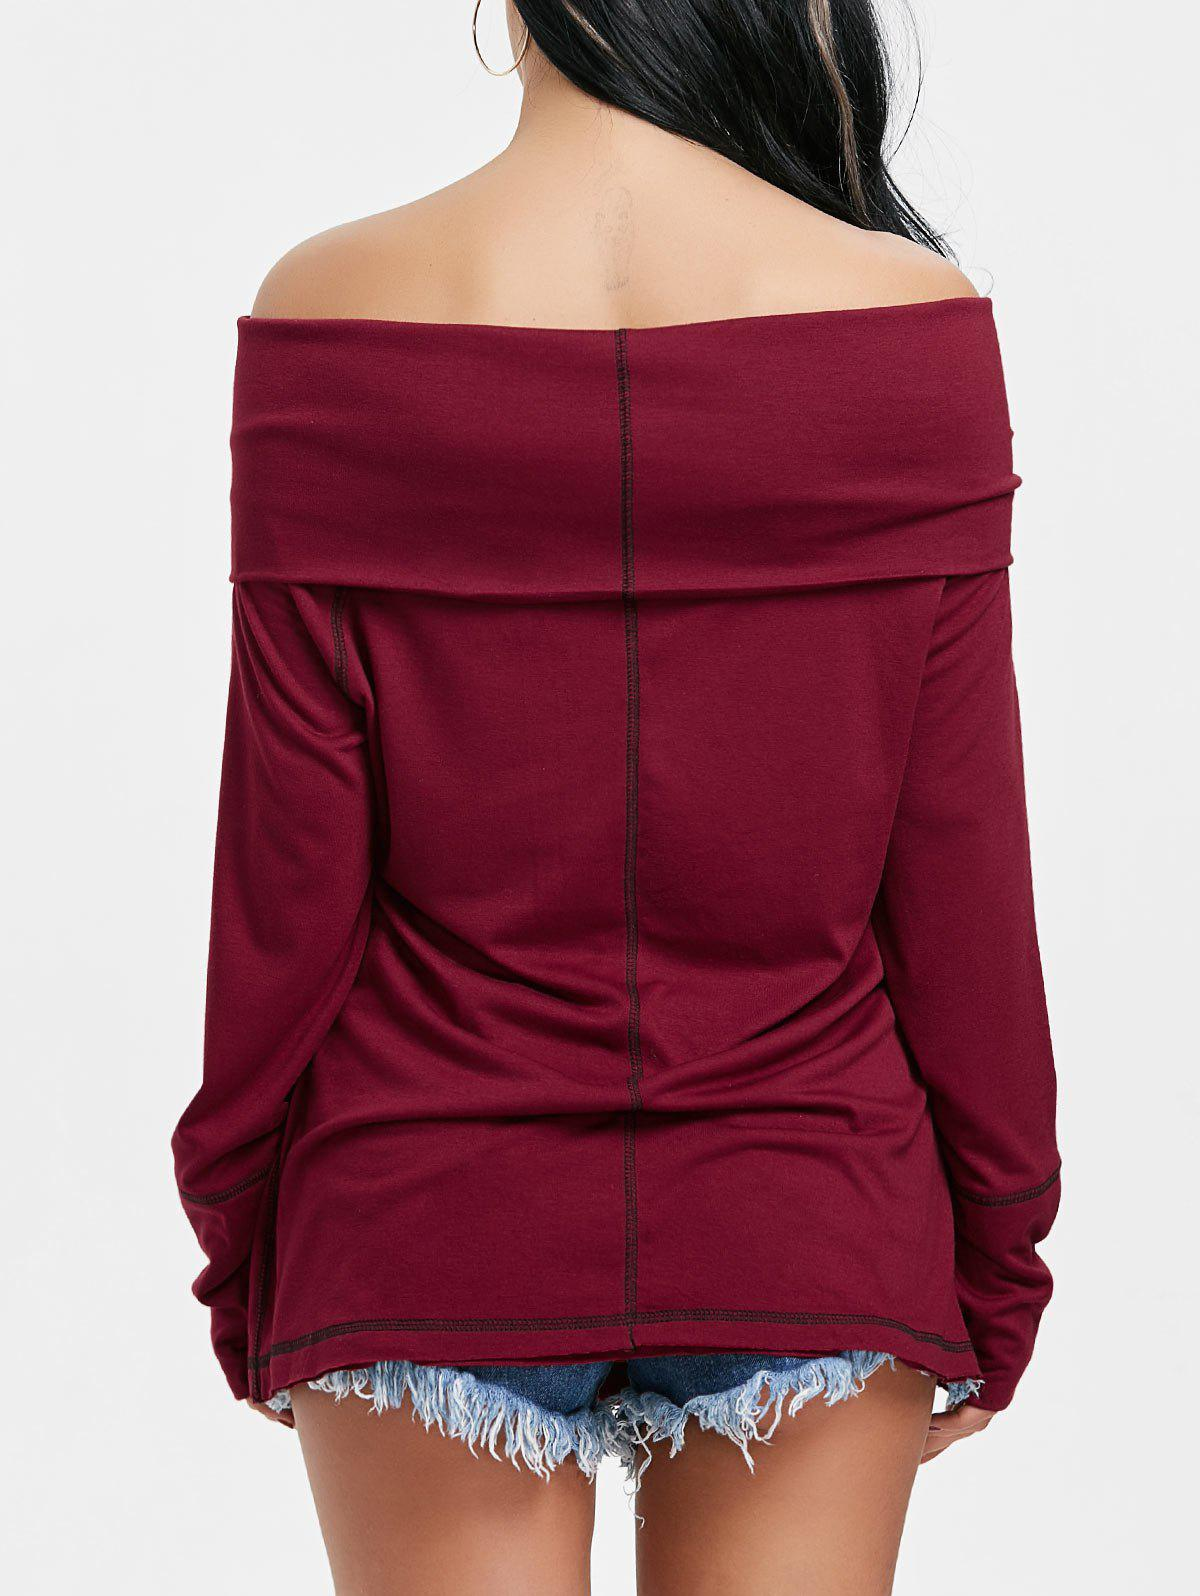 Convertible Off The Shoulder T-shirt - WINE RED S